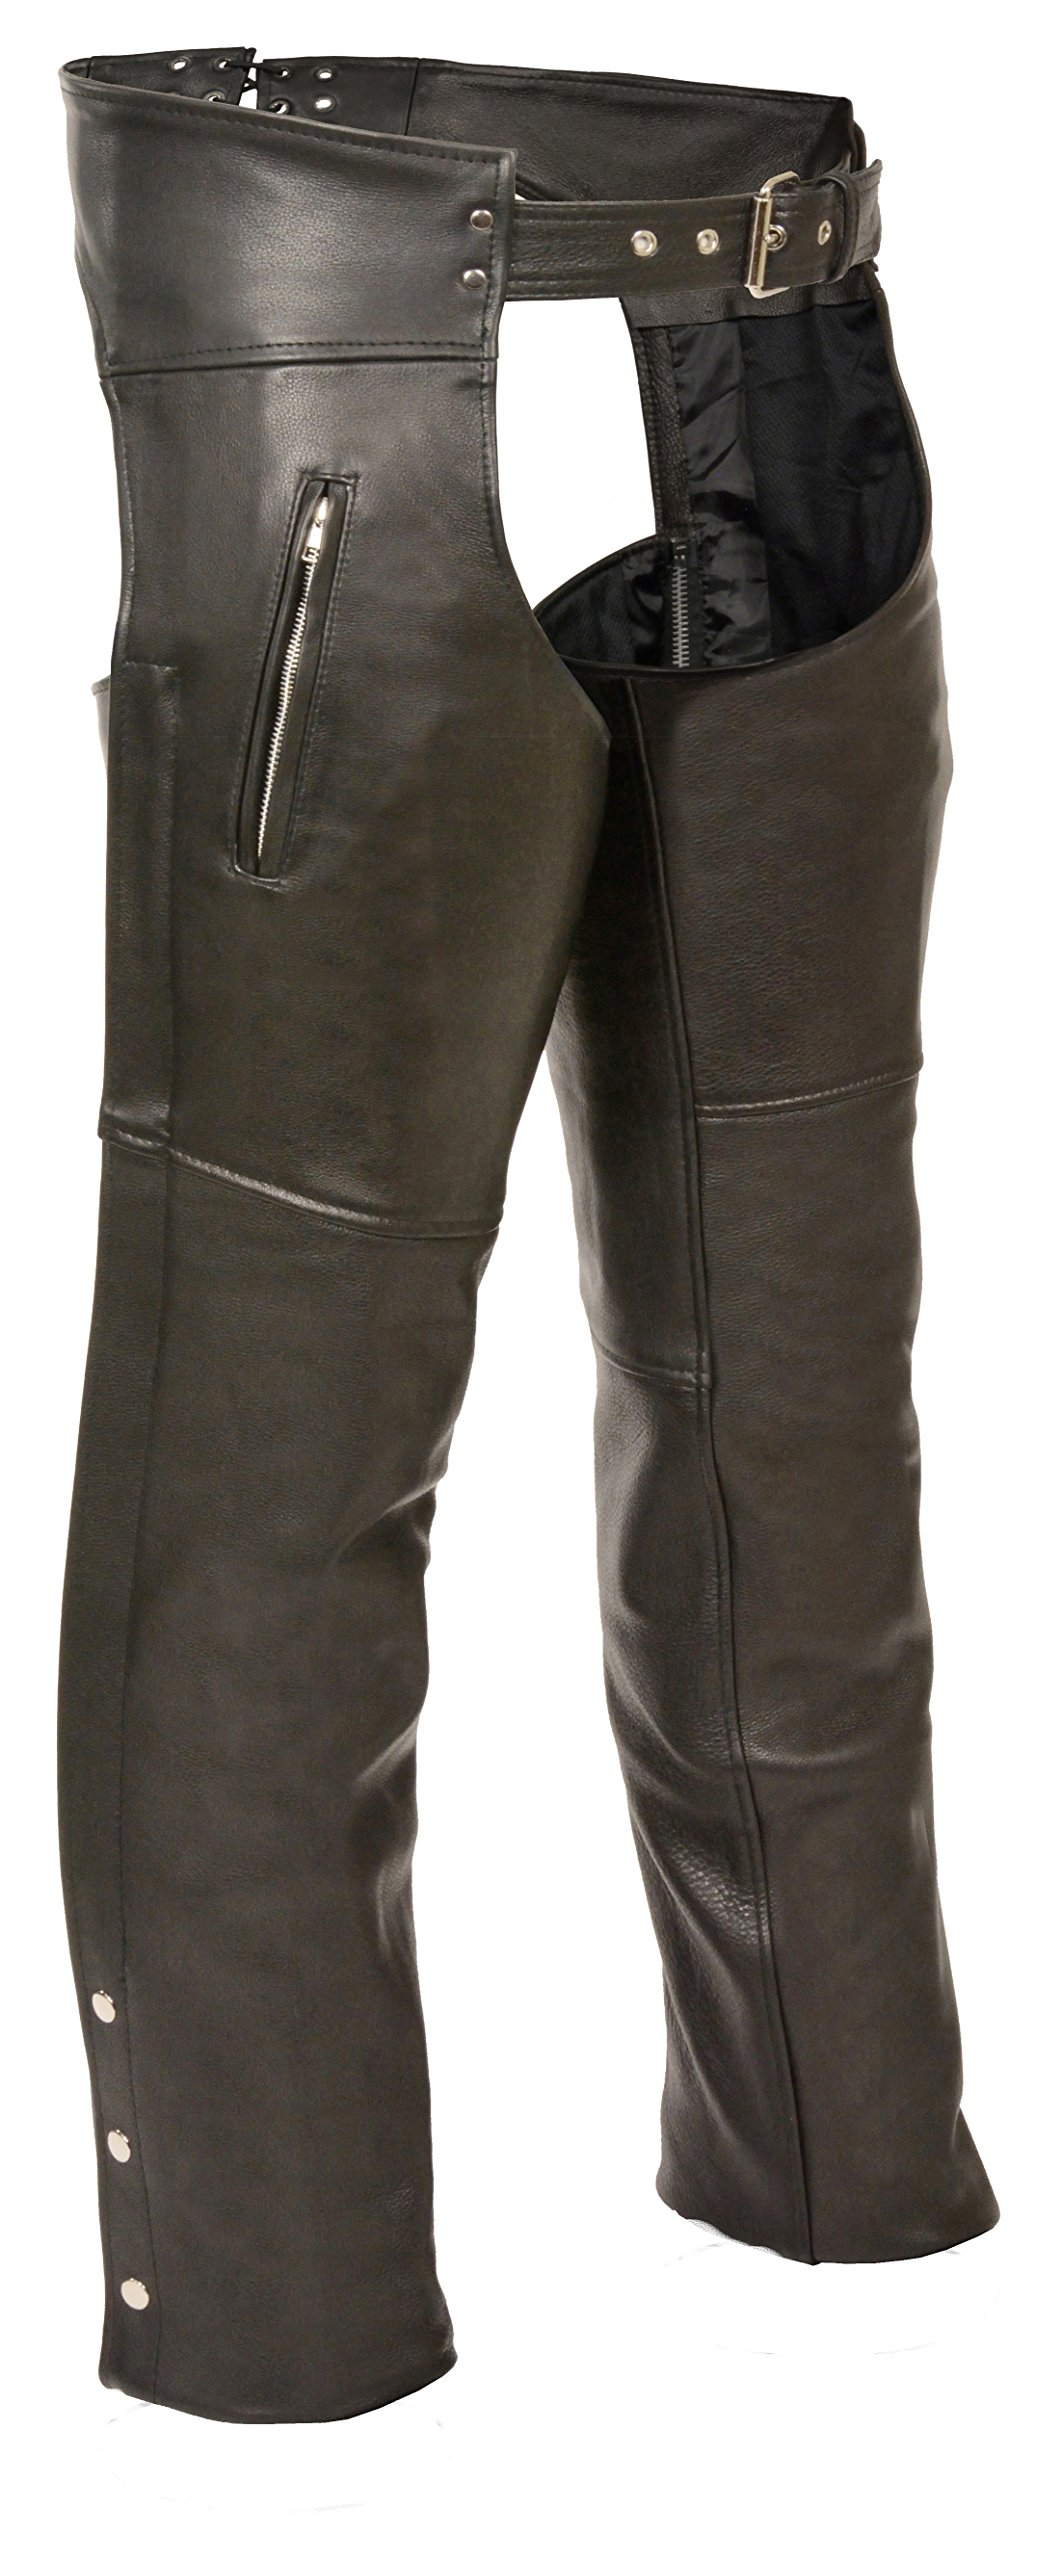 LEATHER KING Zippered Thigh Pocket Chaps (Black, 10X-Large)